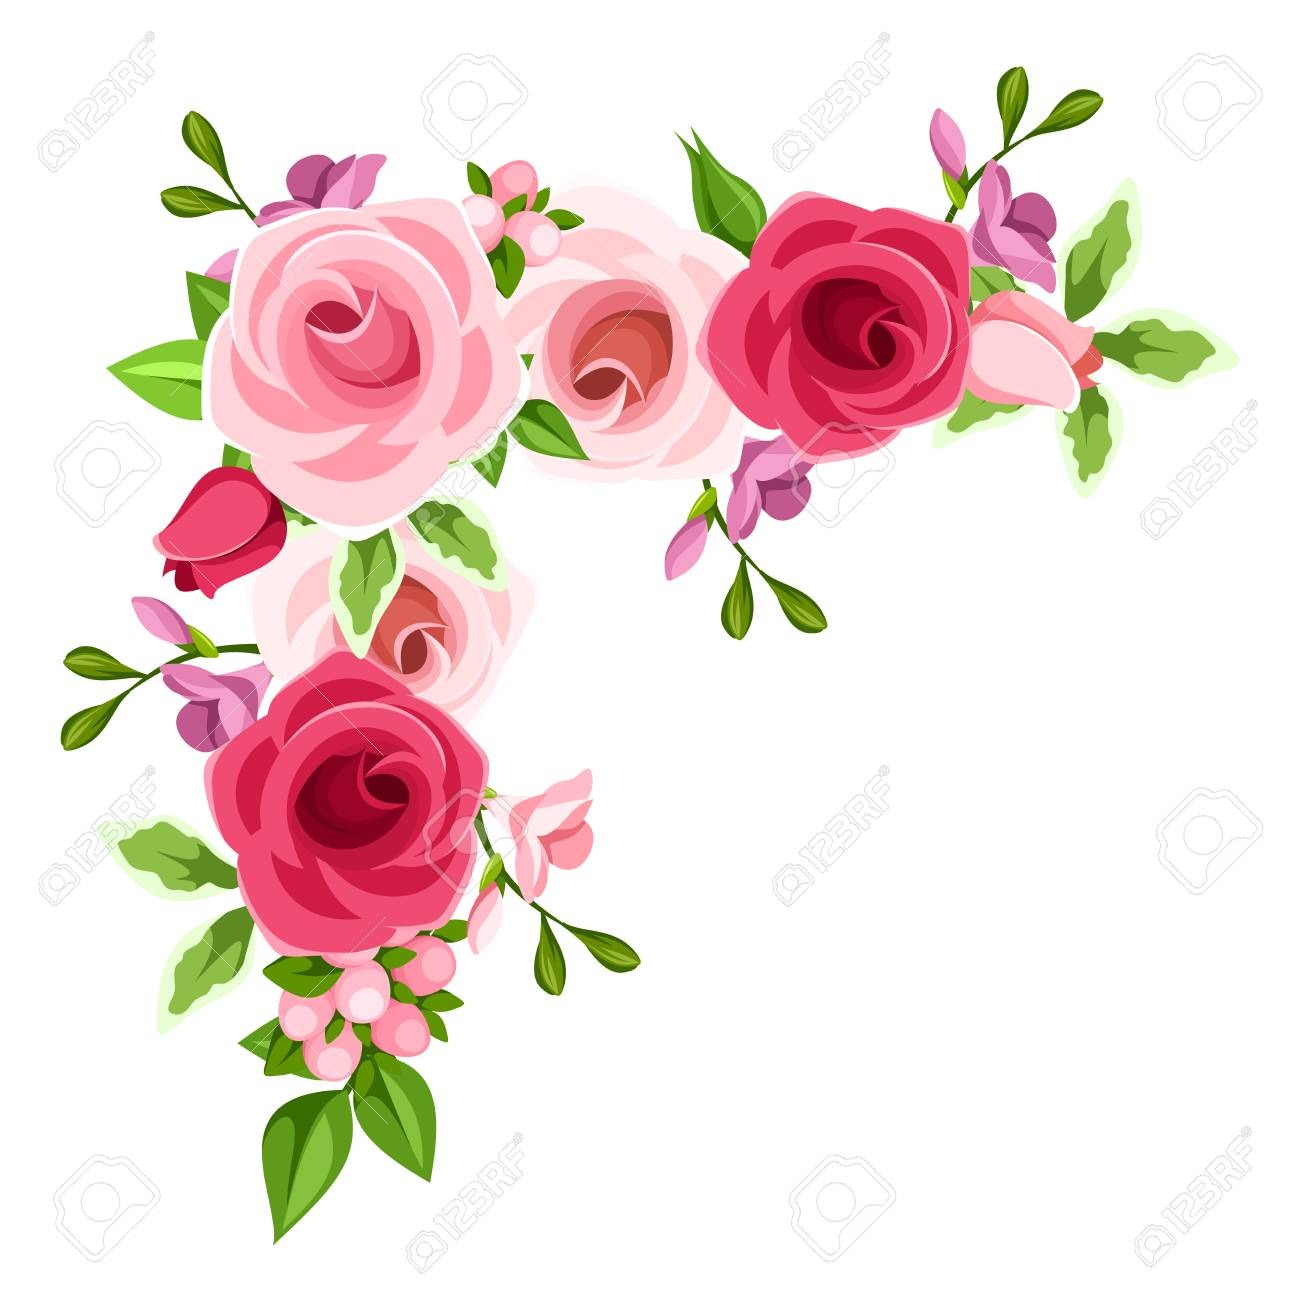 A Vector corner background with red, pink and purple roses and freesia flowers. - 74872490